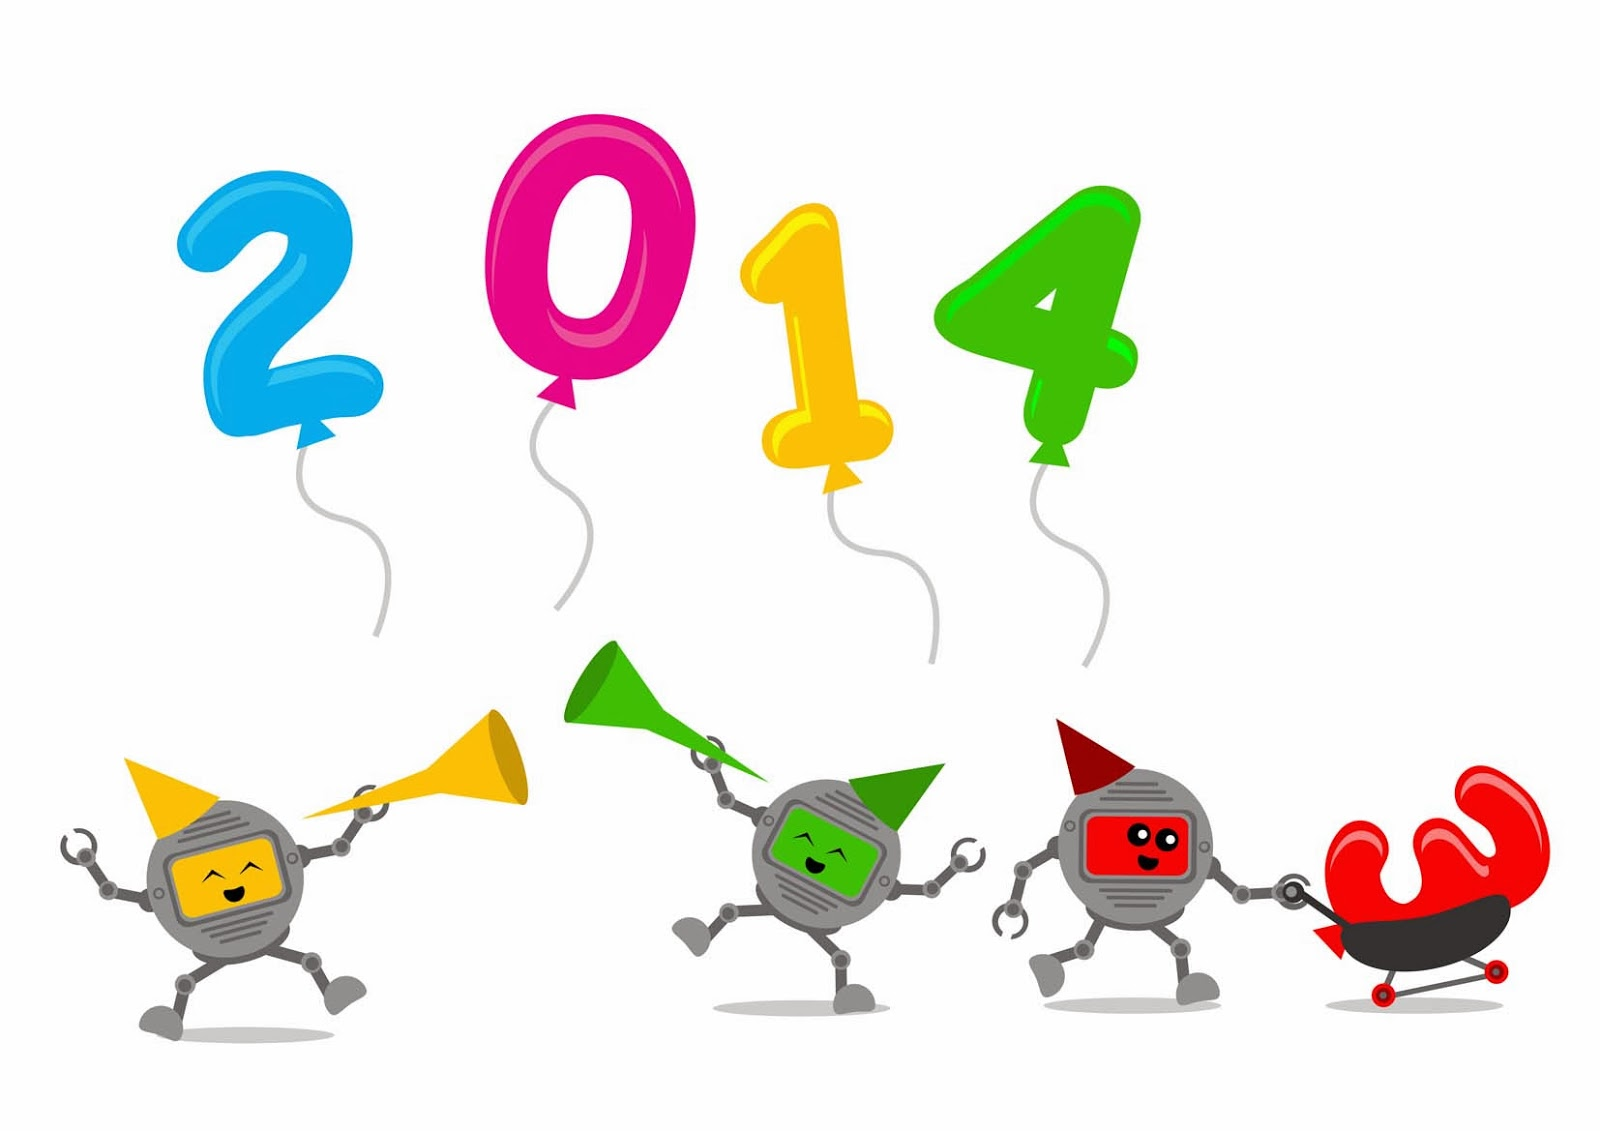 new year's day 2014 clipart - photo #29